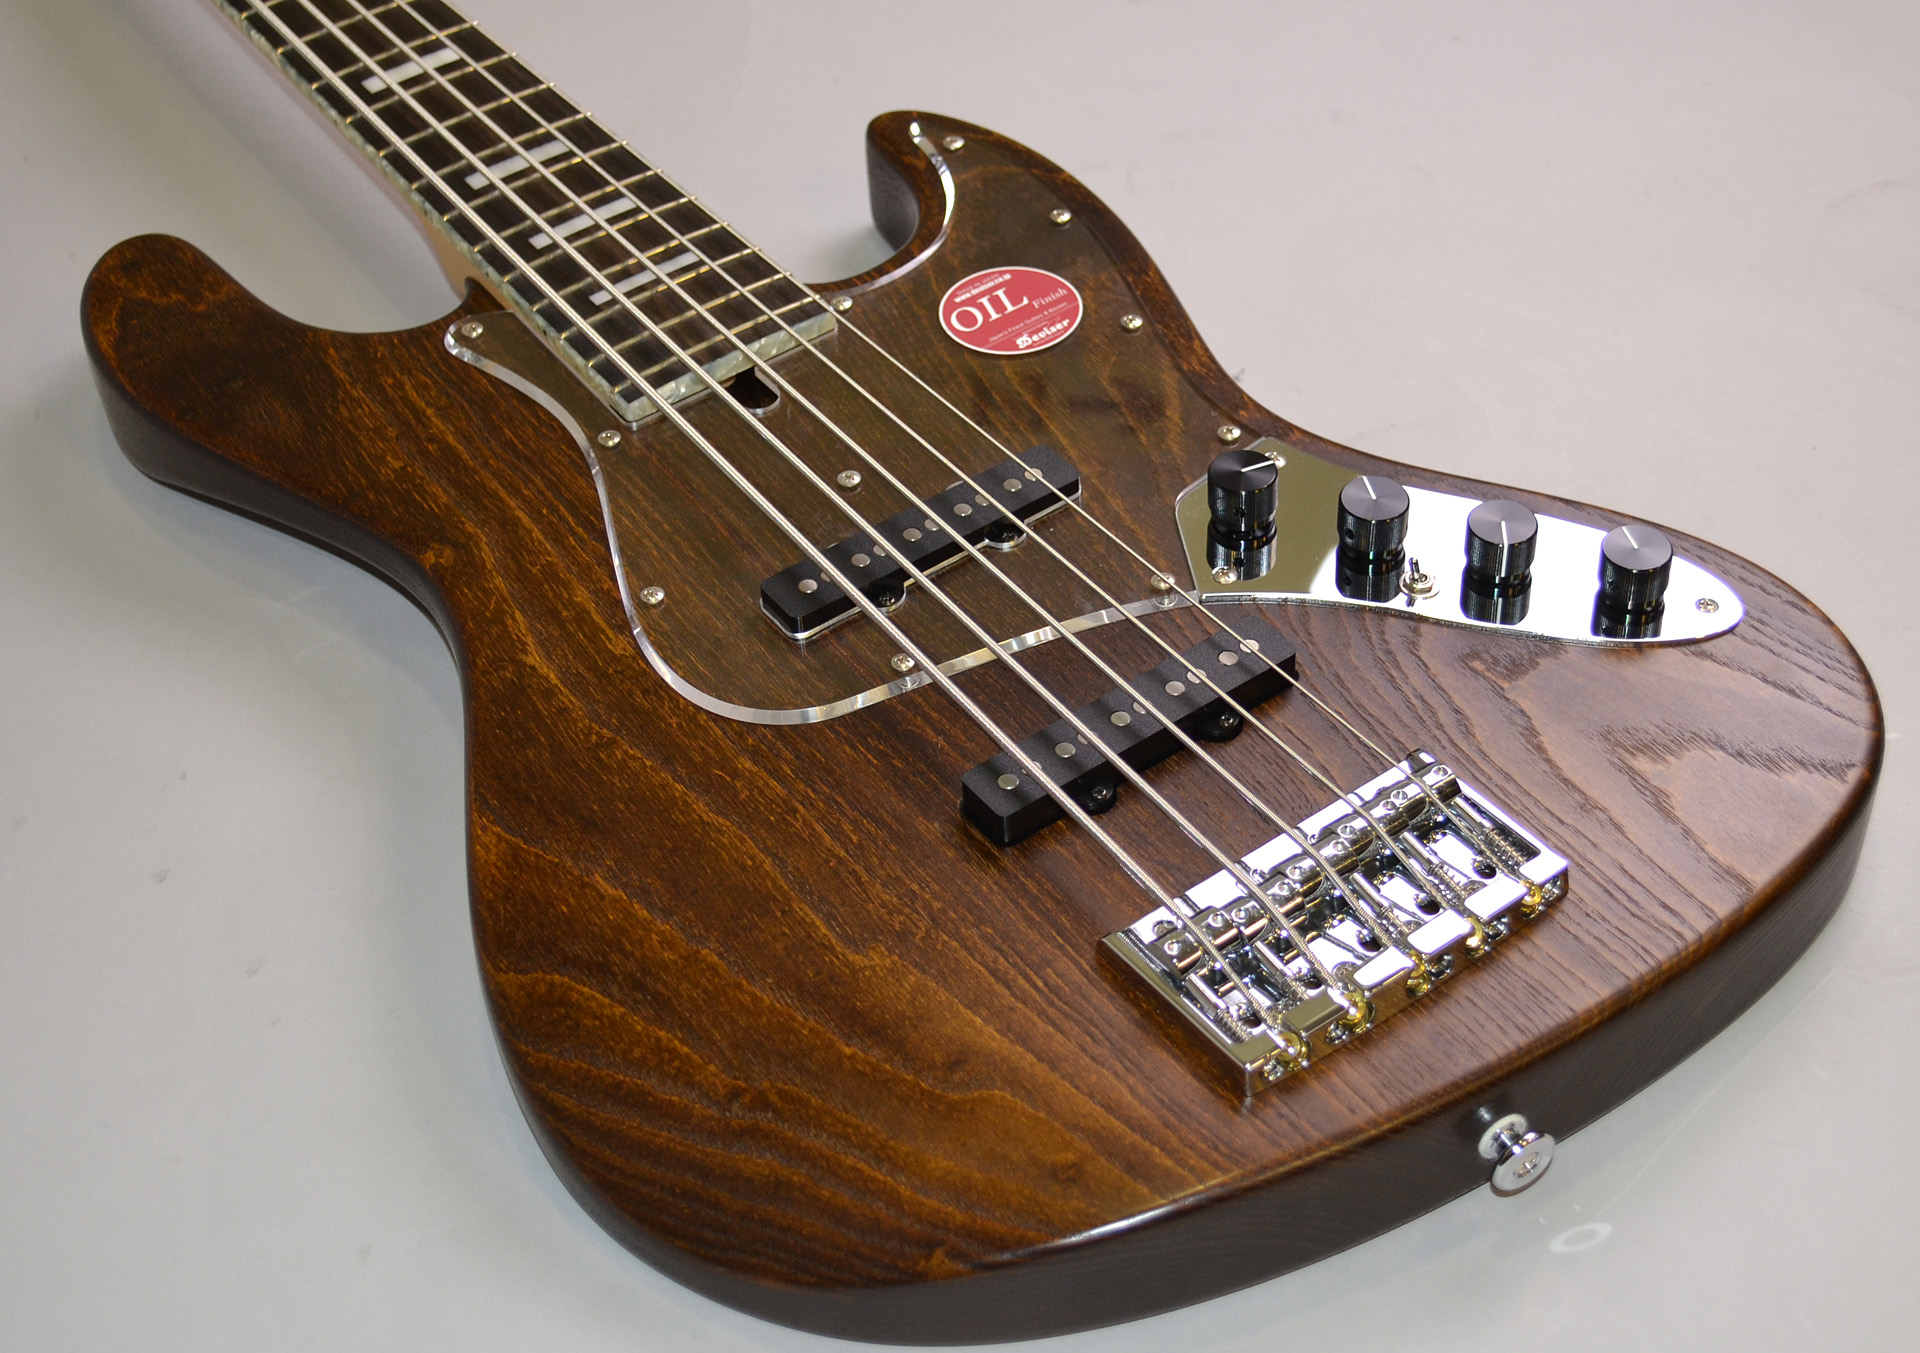 WOODLINE DX5 AC/ E BROWN OIL SN/138316の全体画像(縦)